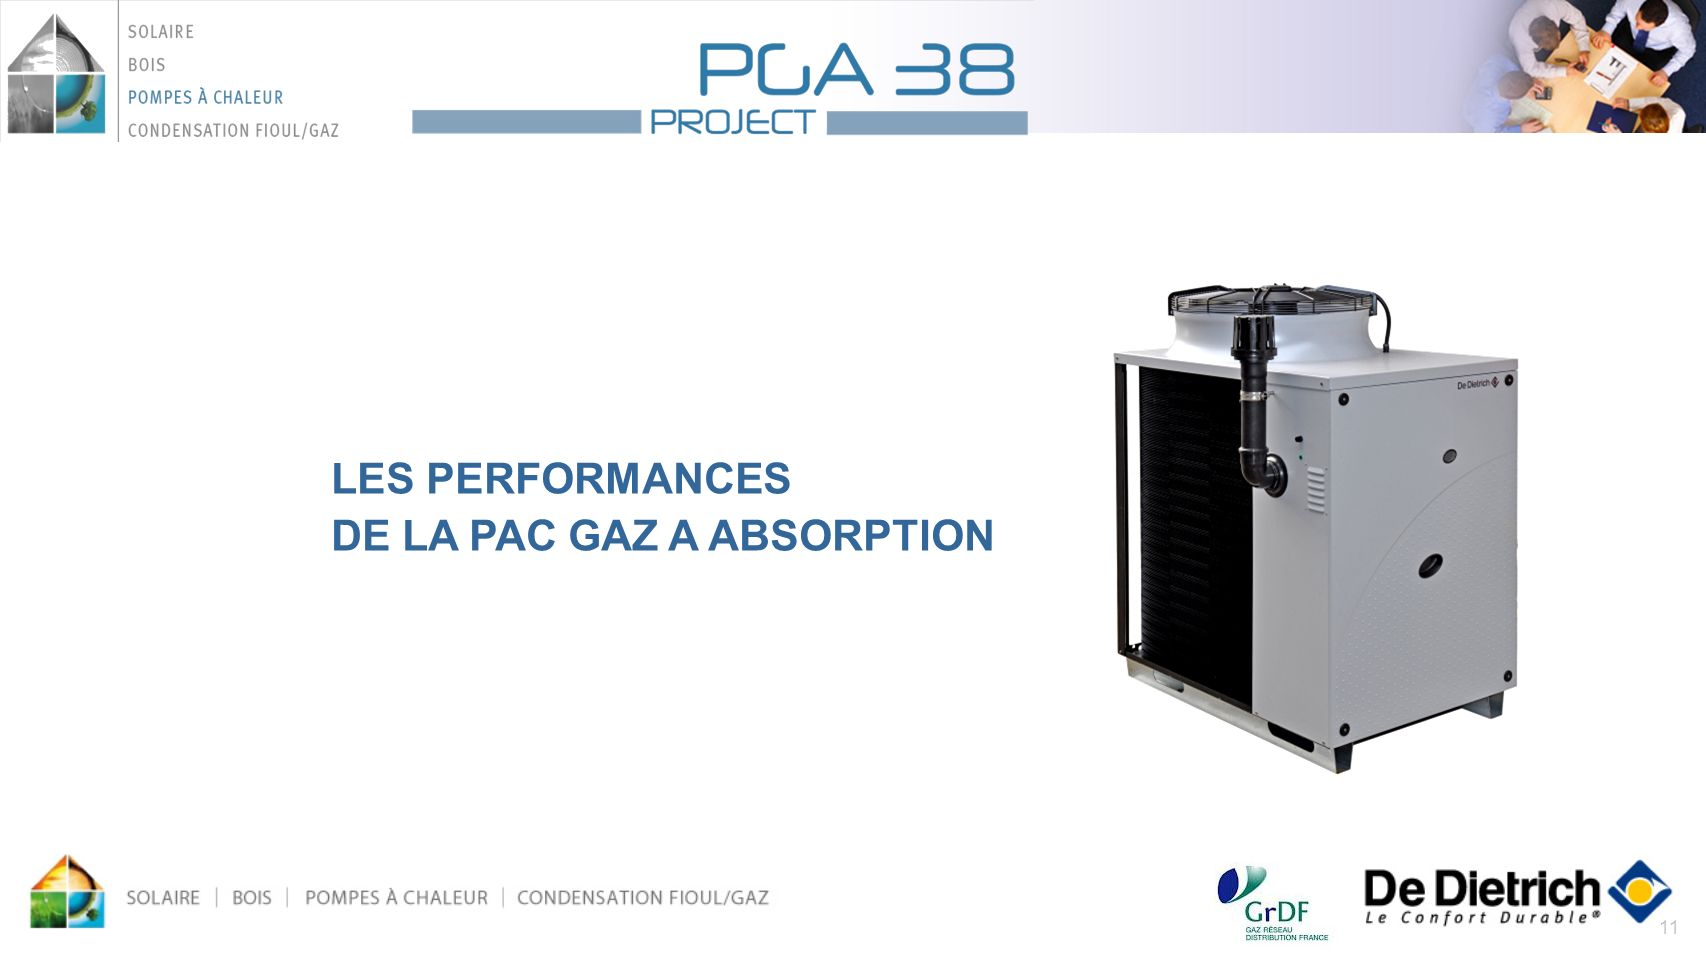 LES PERFORMANCES DE LA PAC GAZ A ABSORPTION